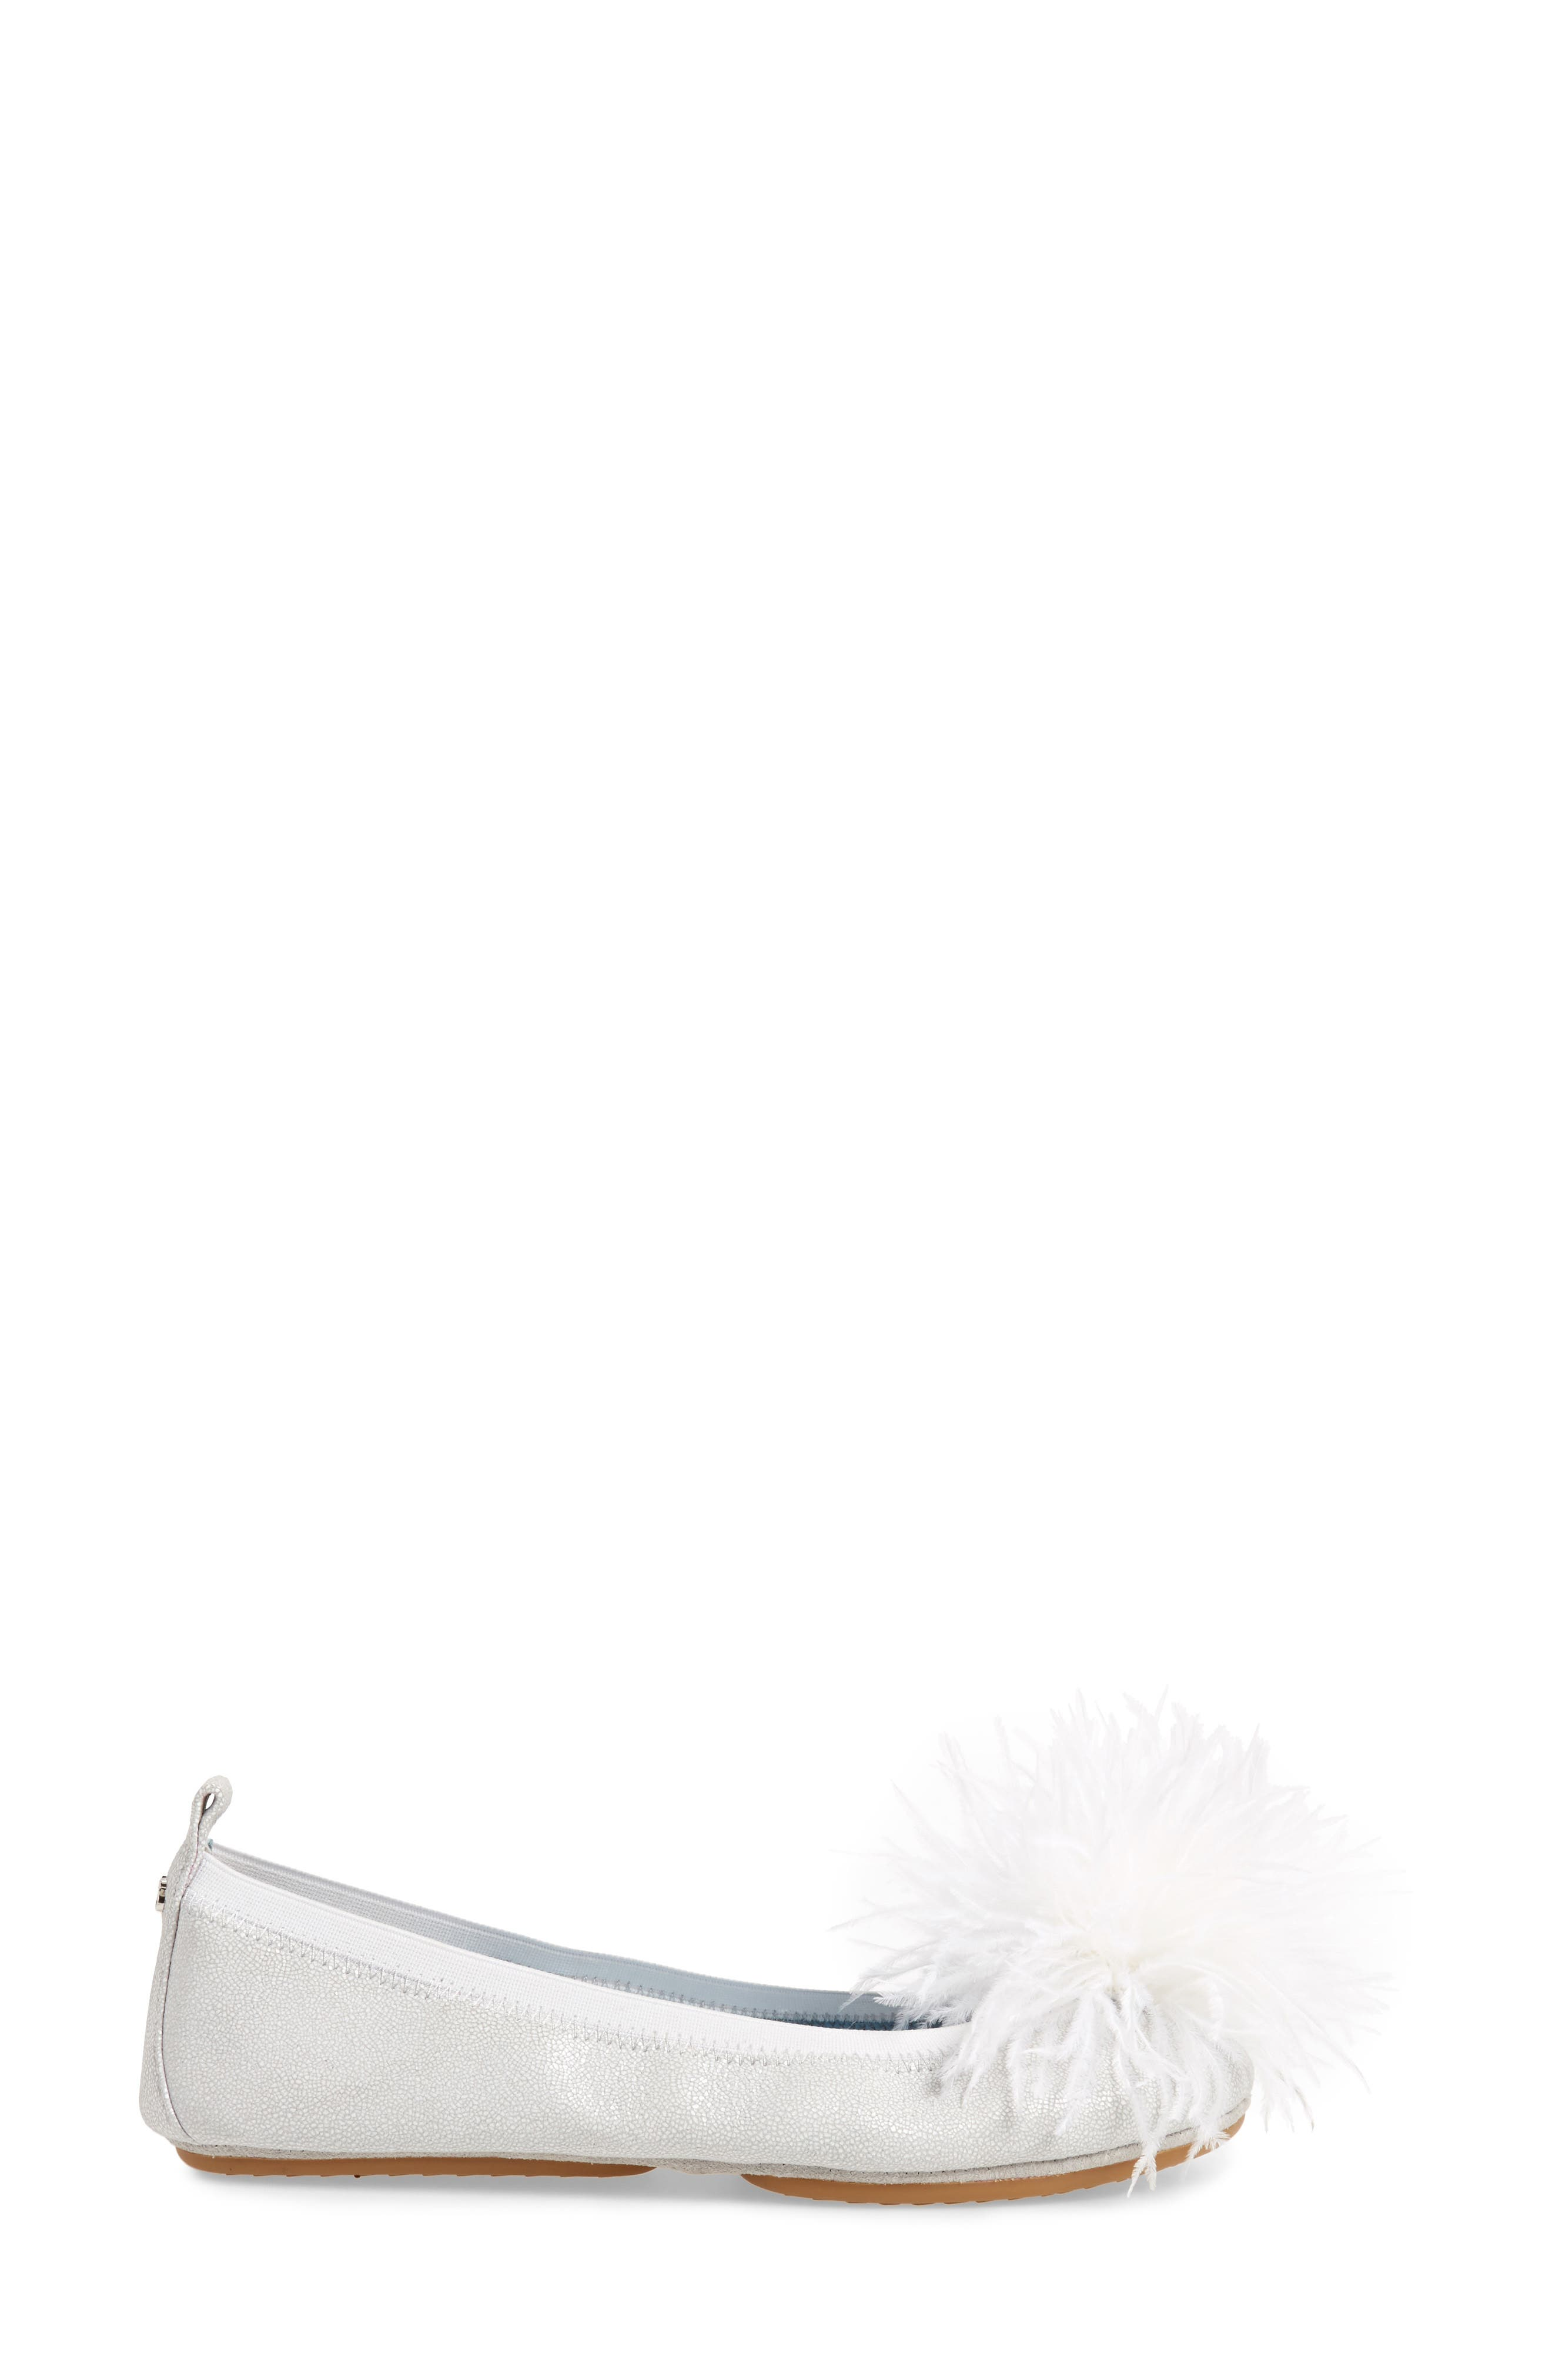 Marabou Feather Pompom Flat,                             Alternate thumbnail 3, color,                             Silver Leather